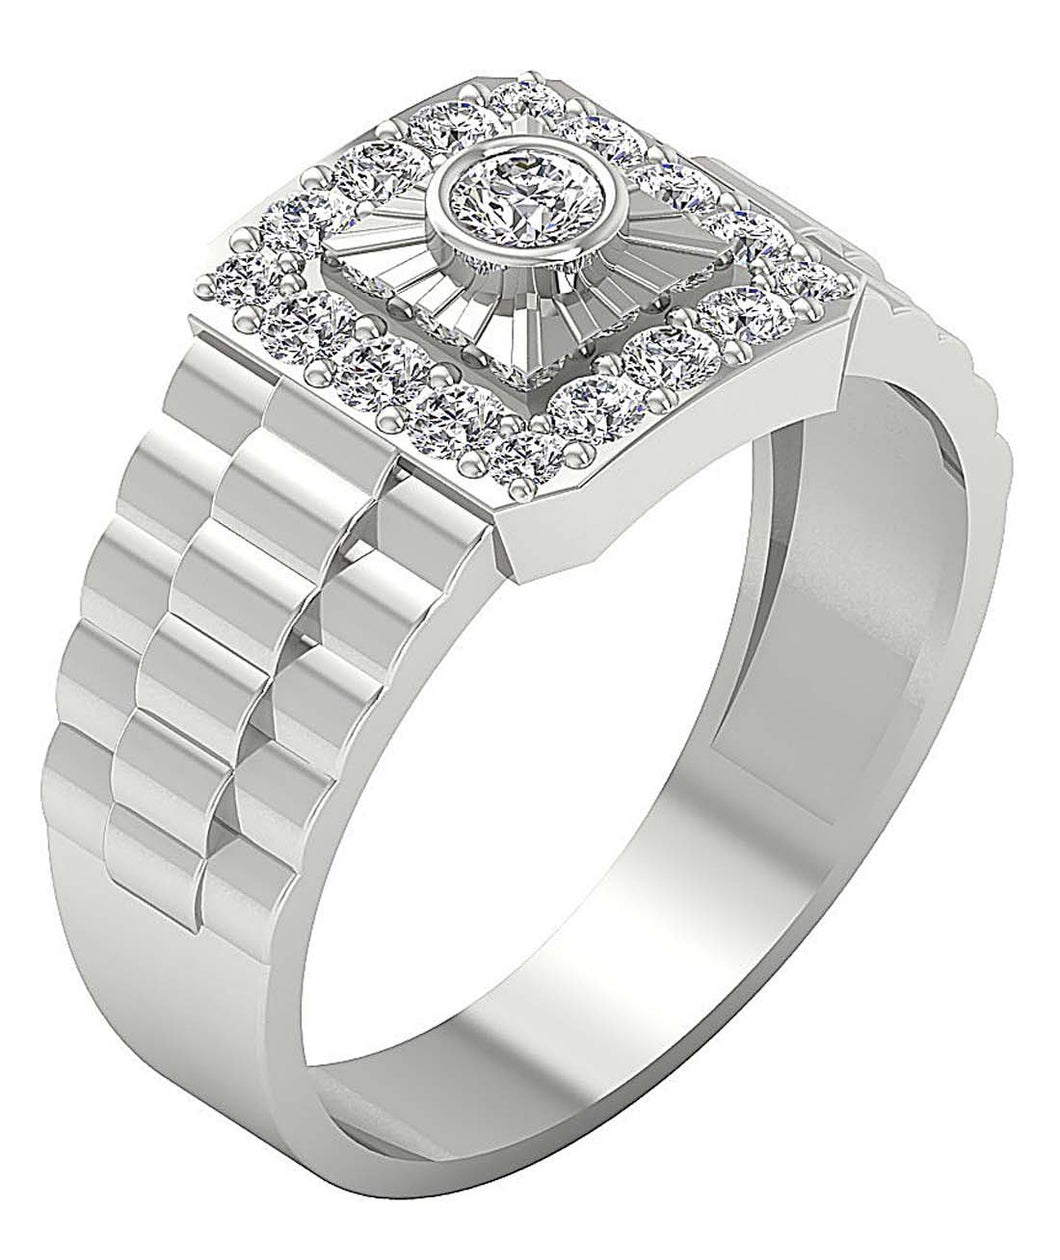 White Gold Designer Natural Diamond Ring-MR-5